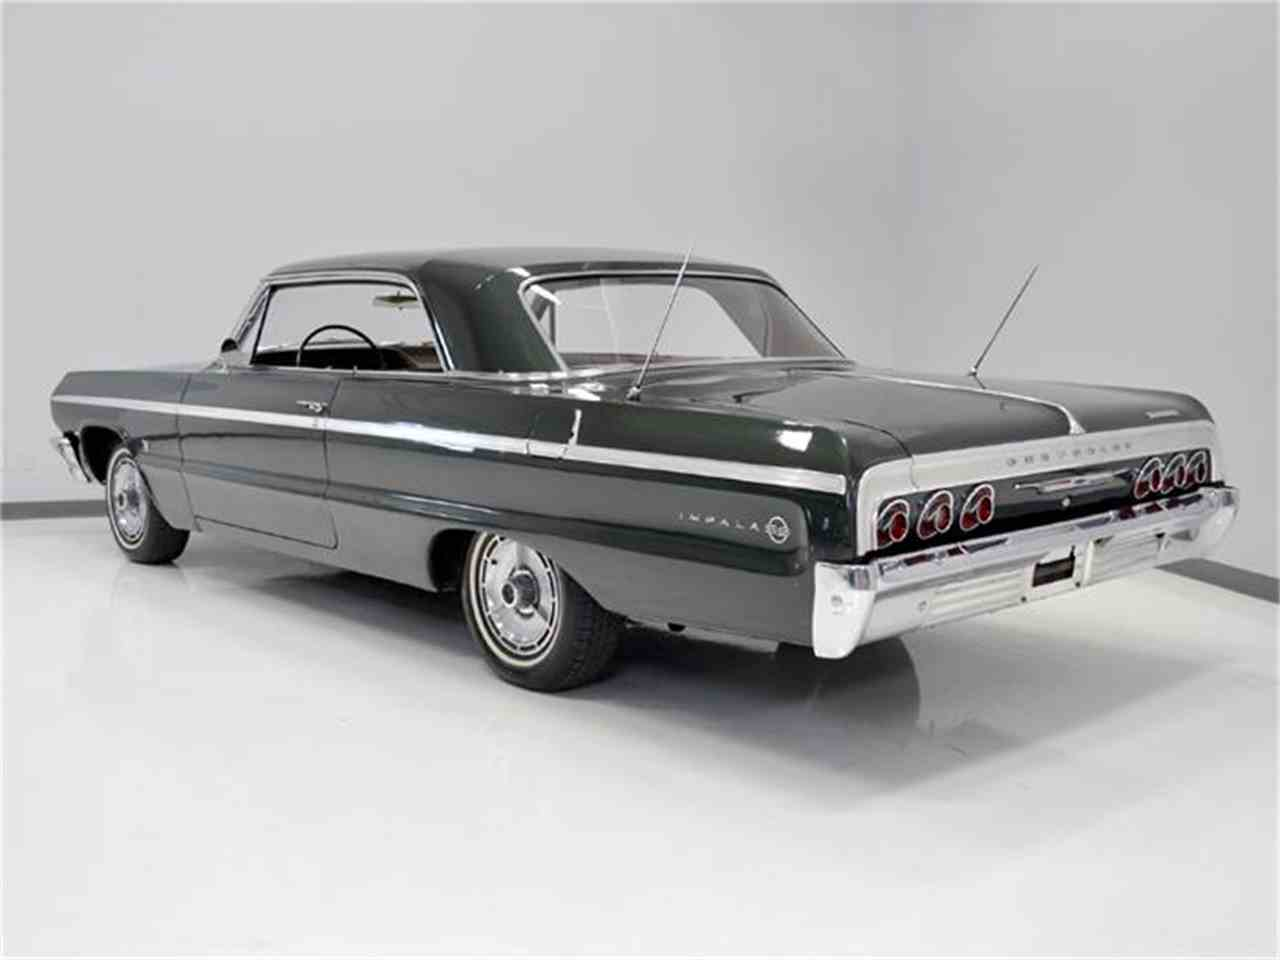 Trucks For Sale In Ohio >> 1964 Chevrolet Impala SS for Sale | ClassicCars.com | CC-792861